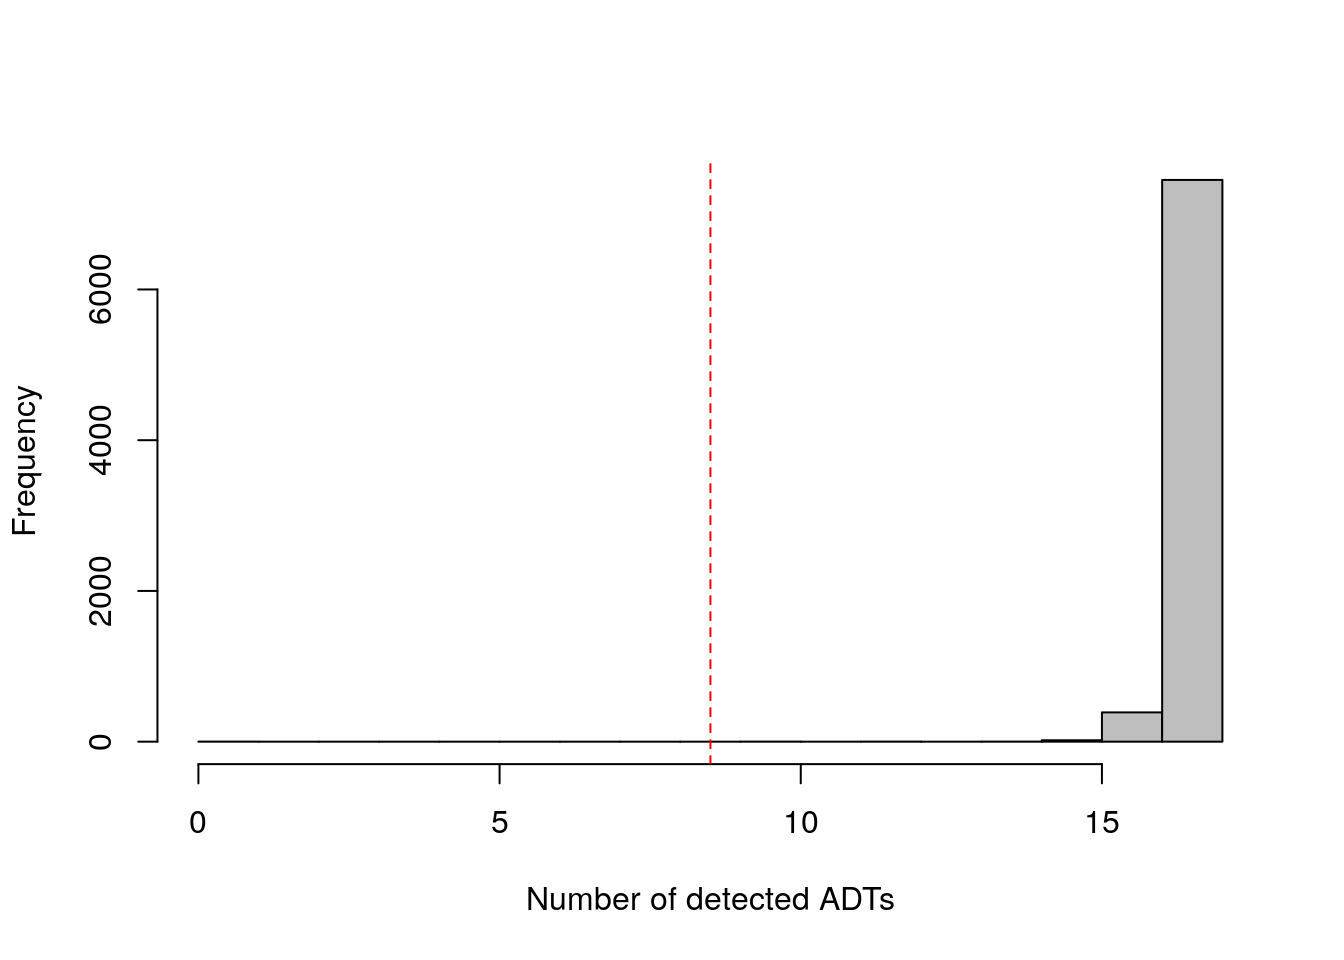 Distribution of the number of detected ADTs across all cells in the PBMC dataset. The red dotted line indicates the threshold below which cells were removed.